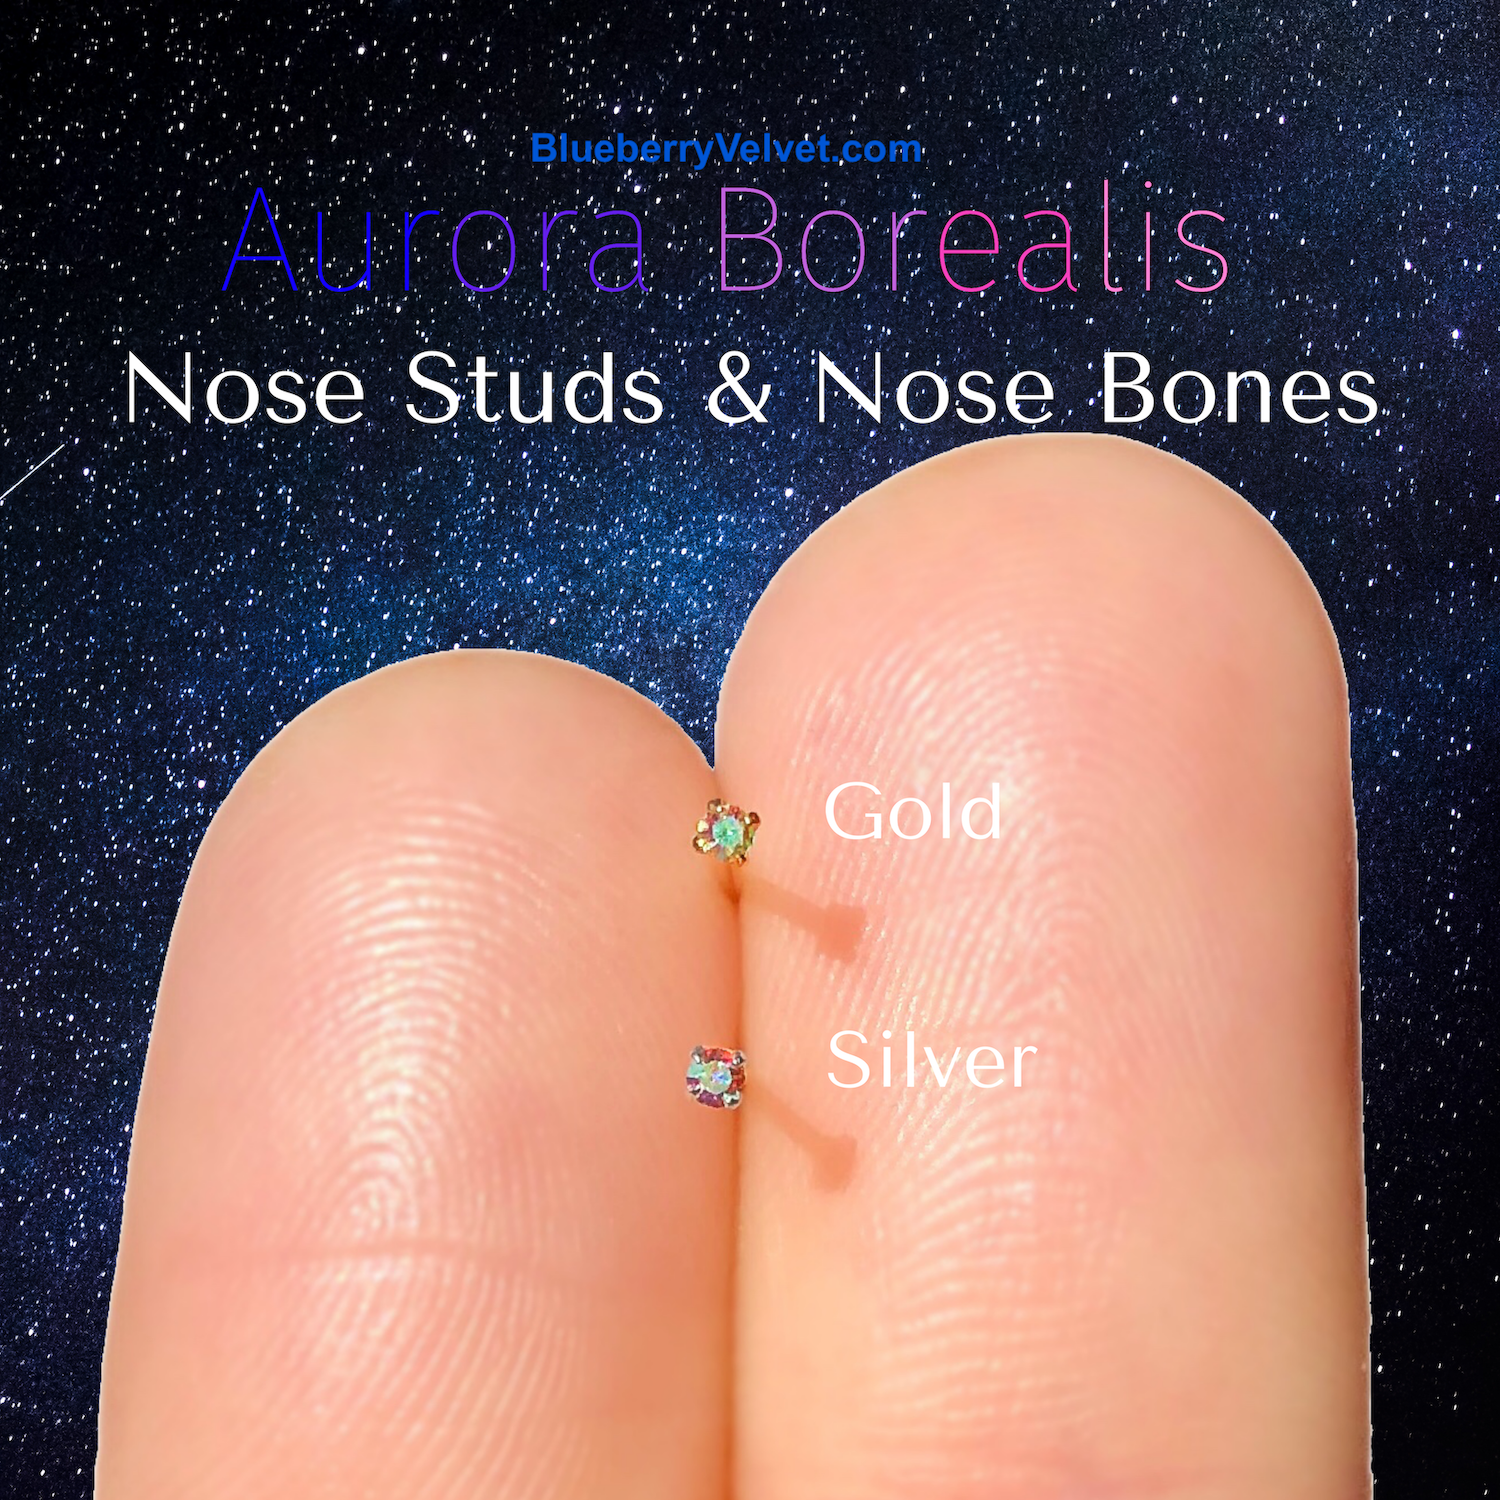 Small Nose Ring Tiny Nose Stud Nose Piercing Stud Gold Nose Etsy In 2020 Nose Stud Tiny Nose Studs Nose Piercing